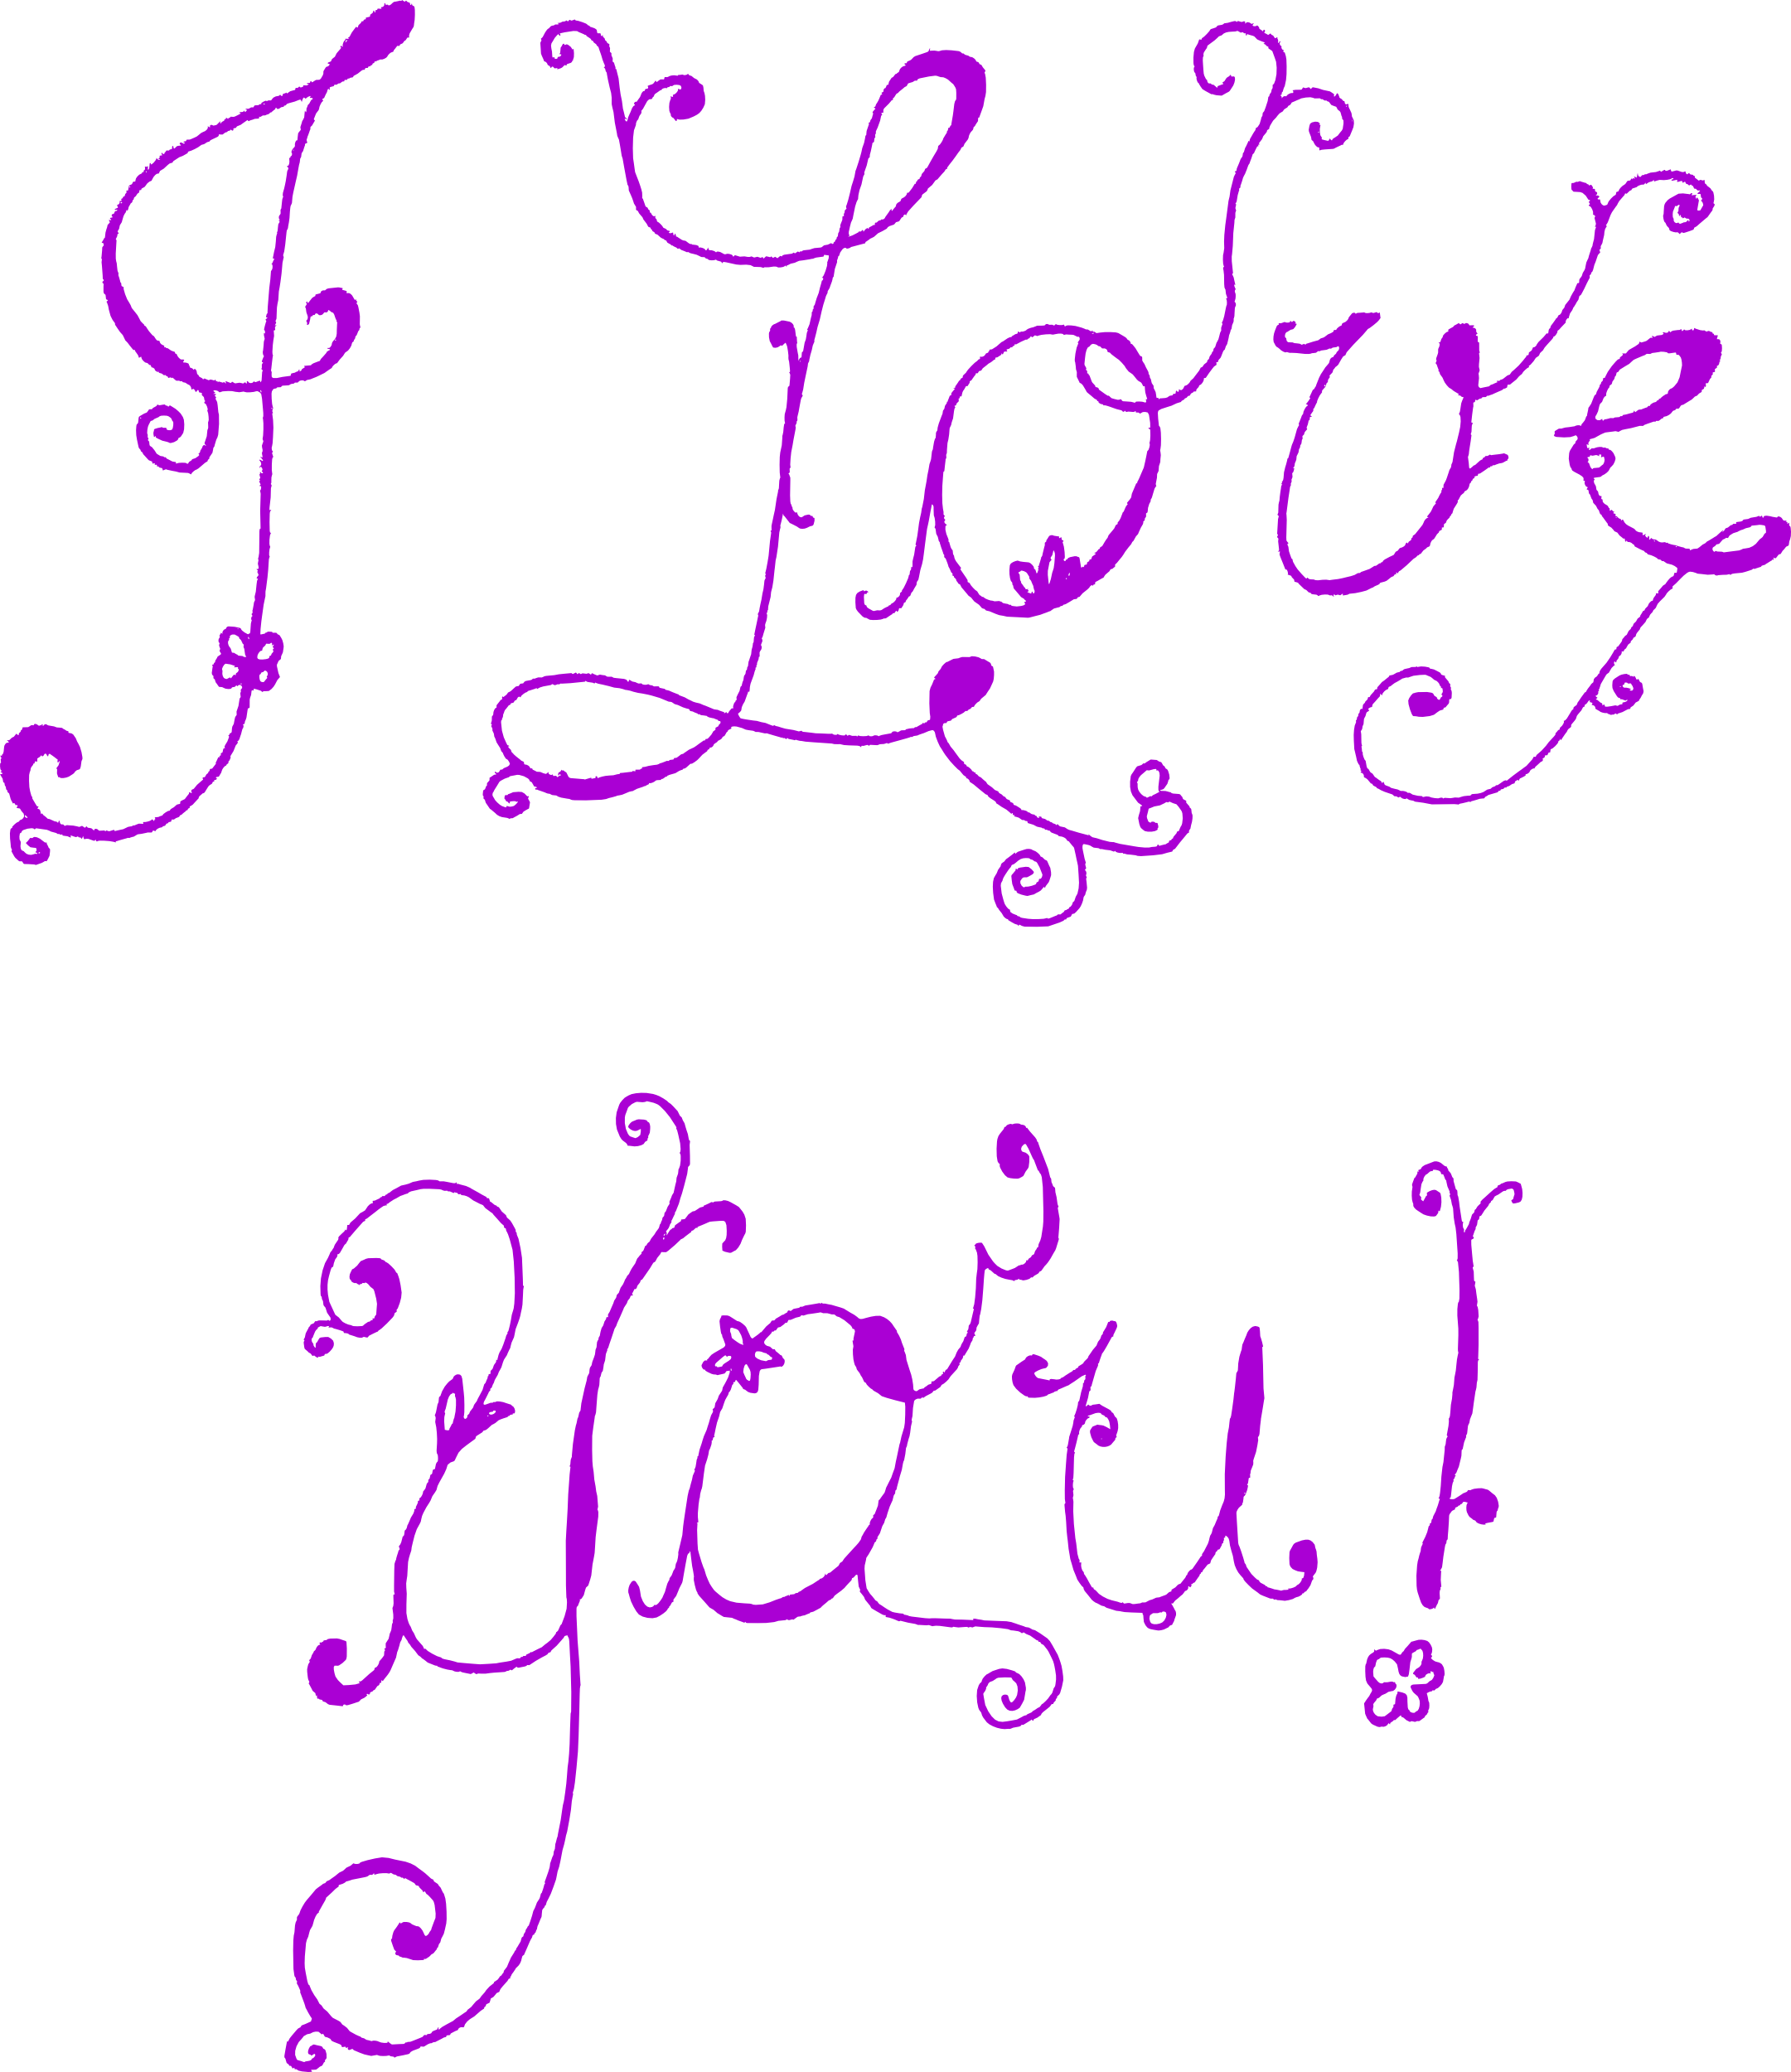 8 i love you texts png transparent onlygfx free download i love you 8g thecheapjerseys Gallery